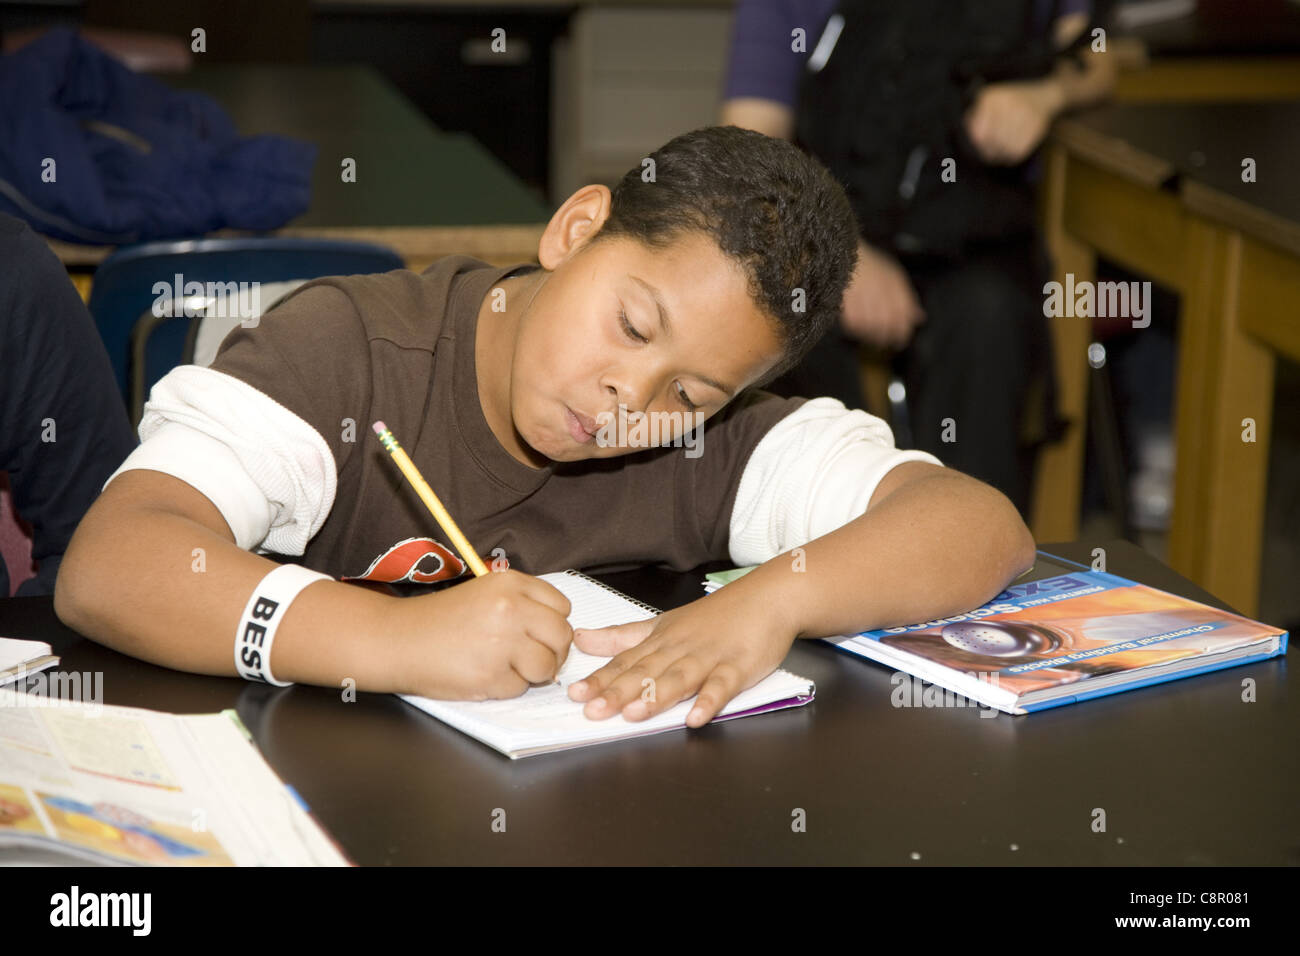 Children at a multiethnic, inner city, overcrowded junior high school in Yonkers, New York. - Stock Image